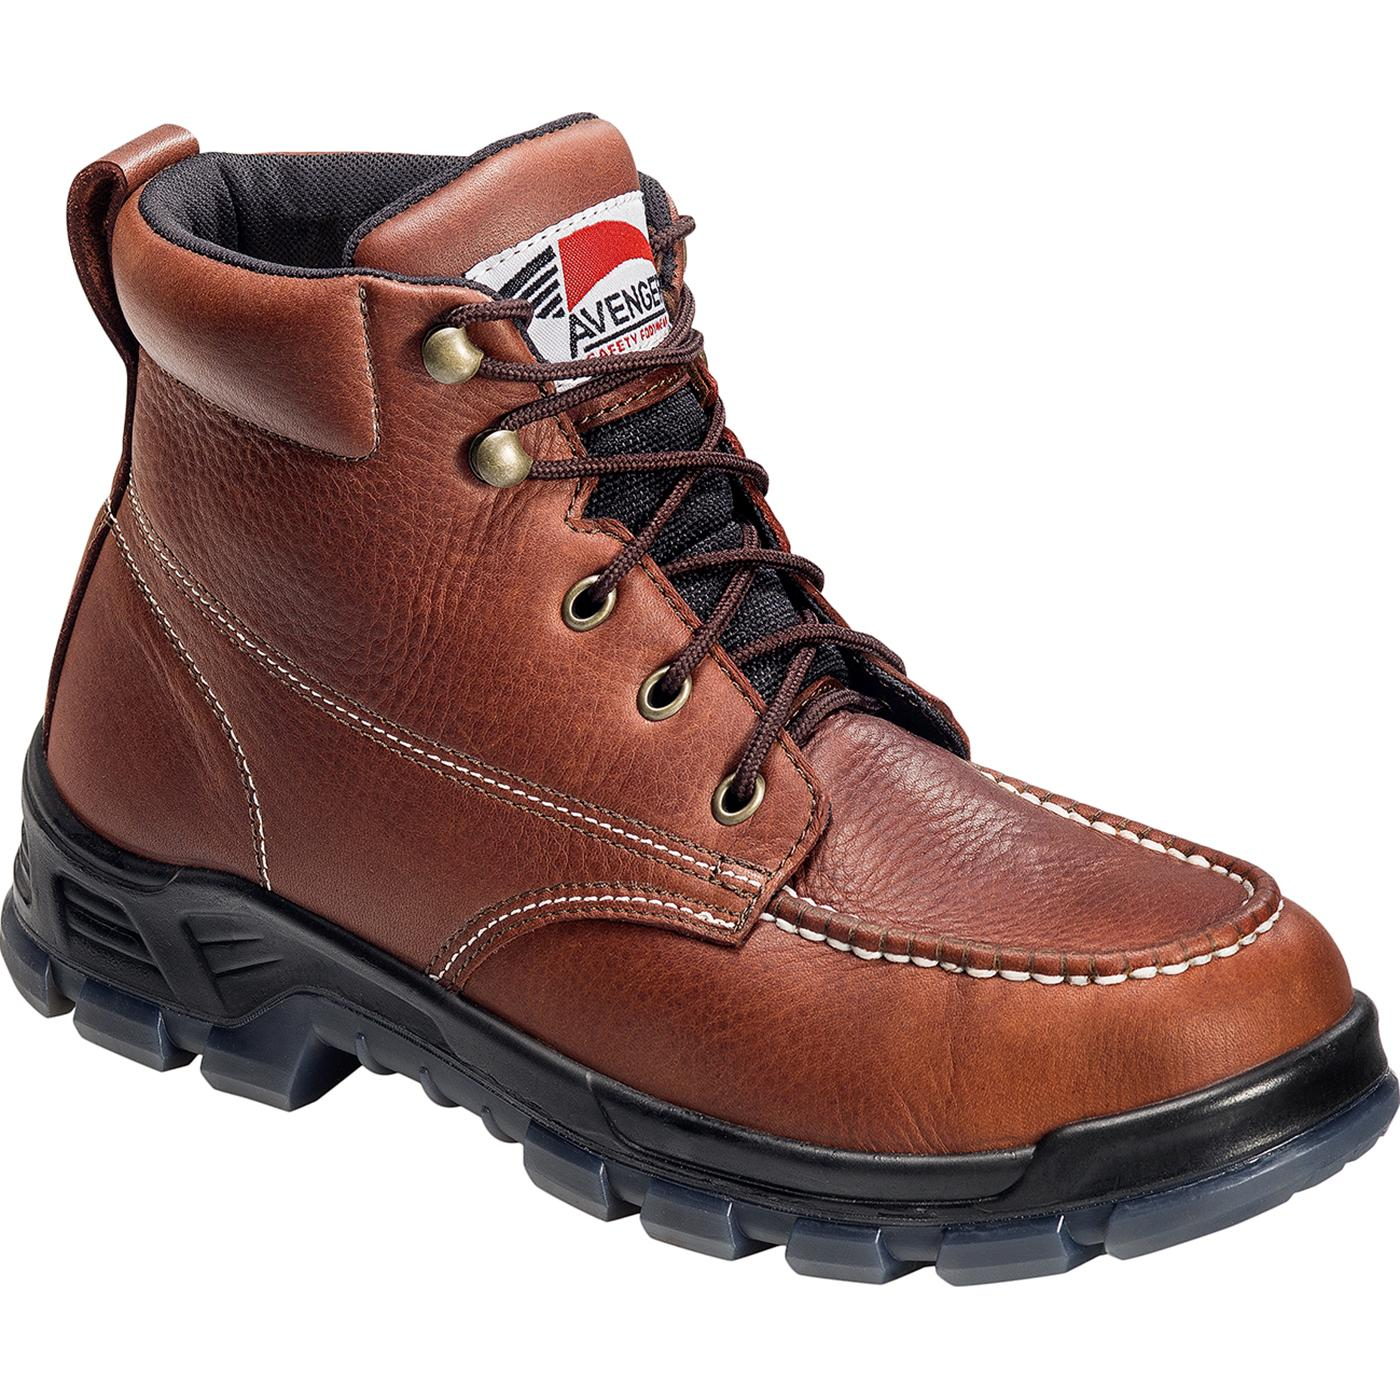 made in america moc toe steel toe work shoes by avenger